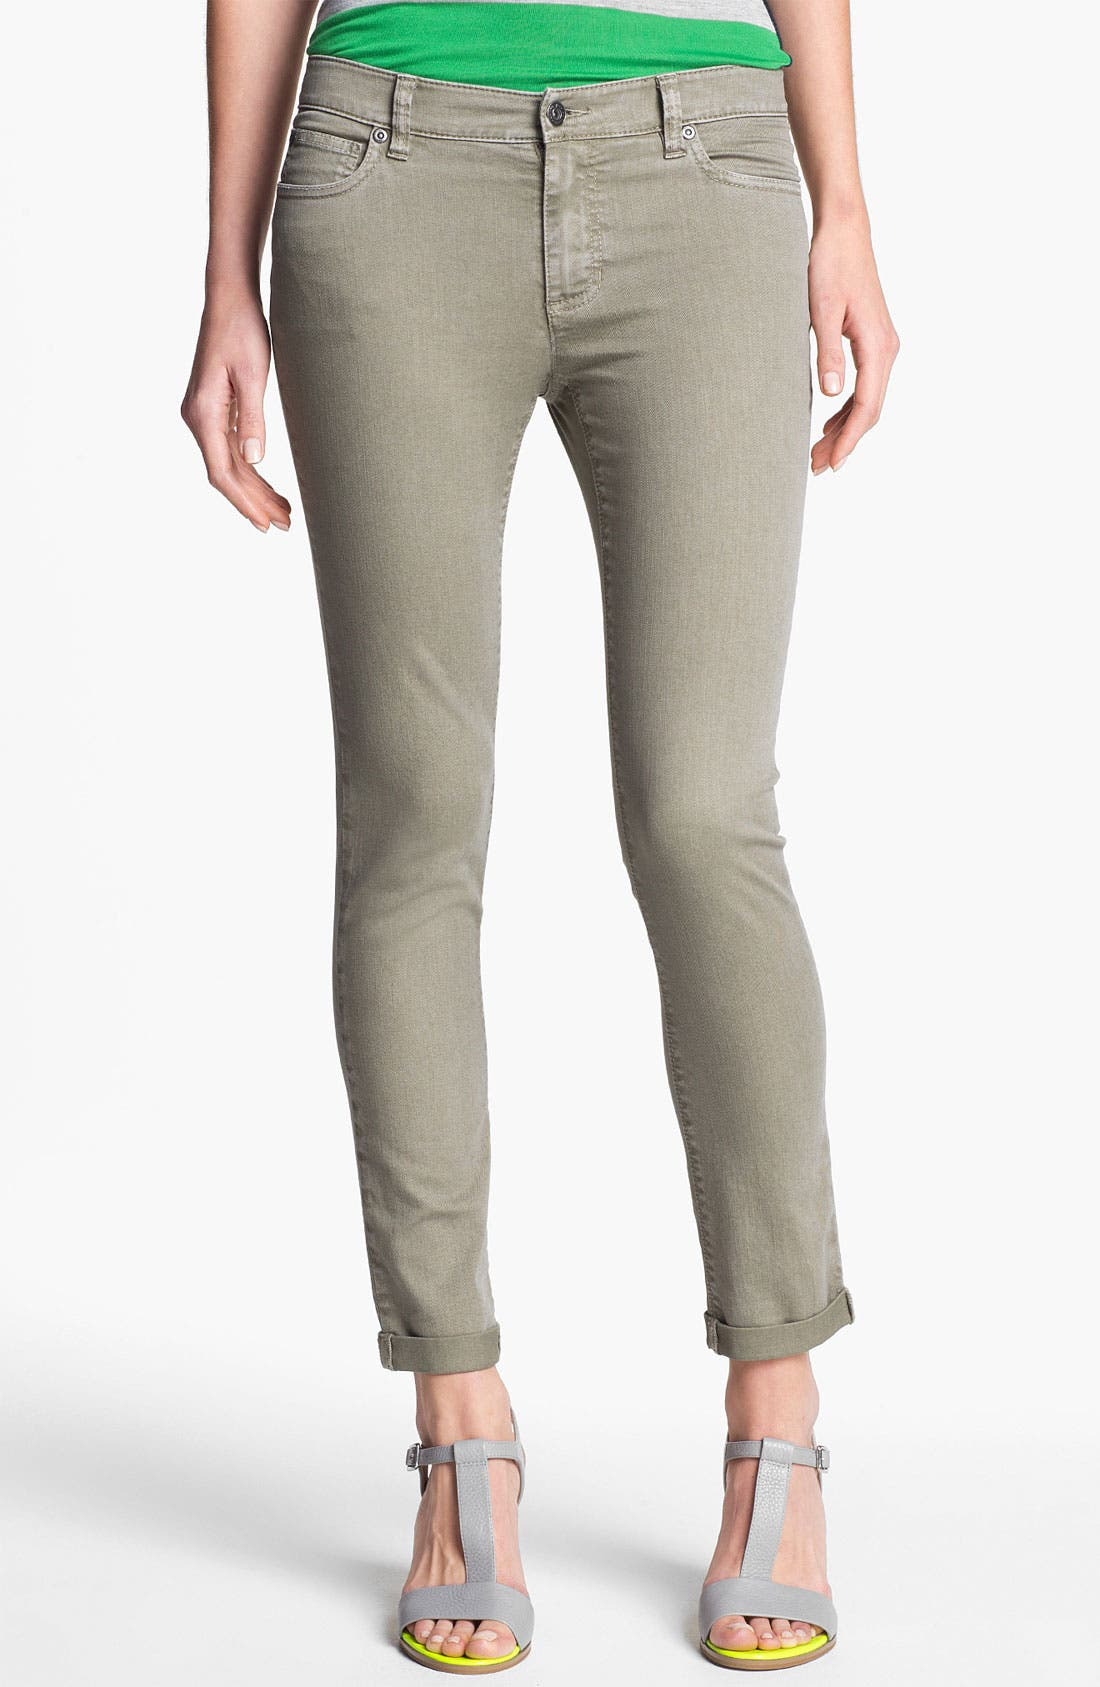 Main Image - Two by Vince Camuto 'Shorty' Skinny Crop Jeans (Washed Olive)